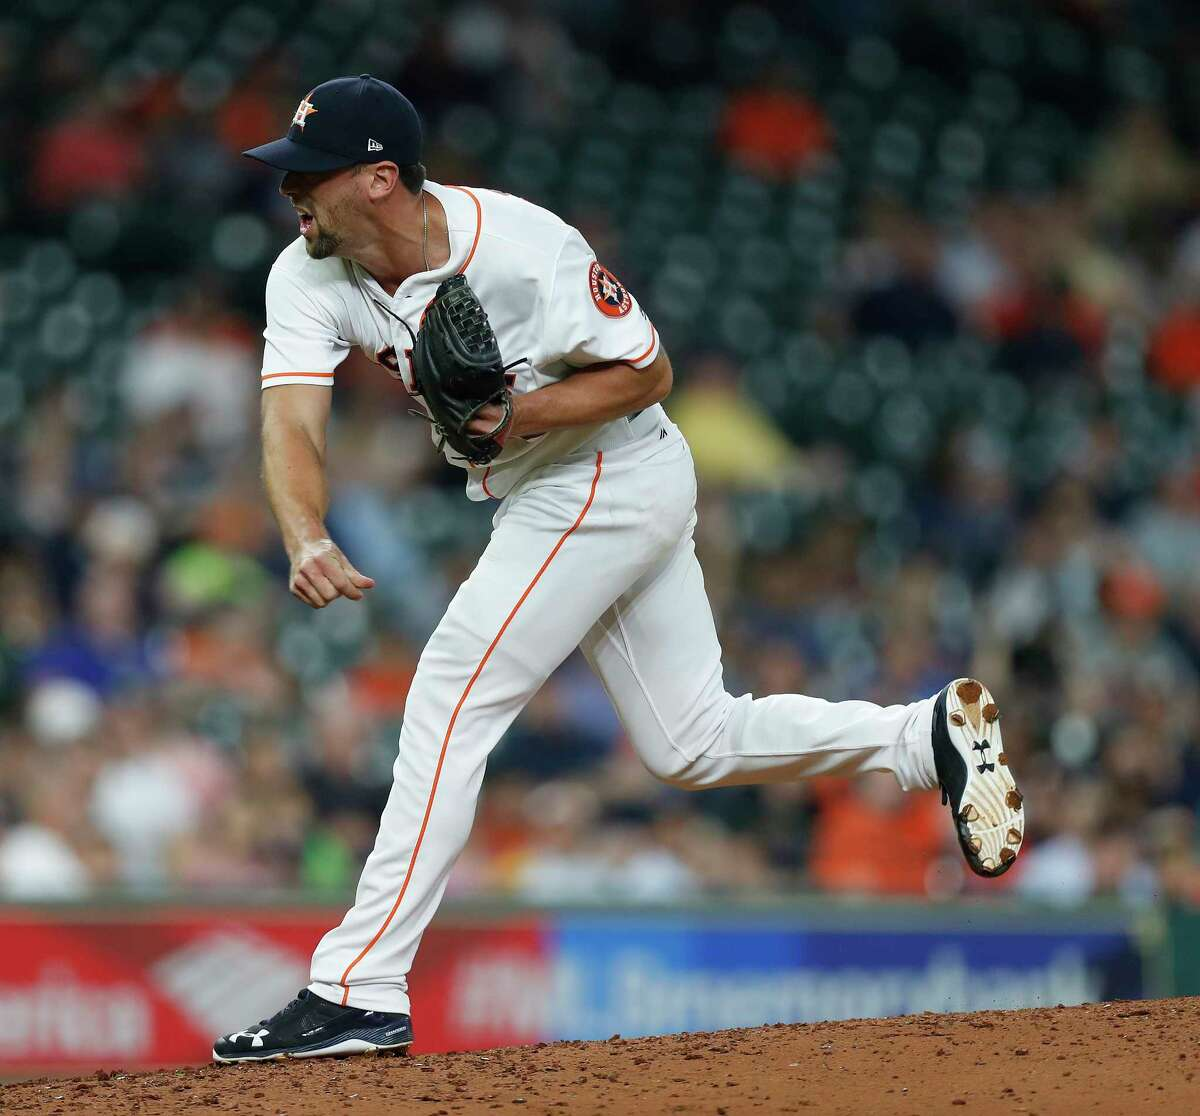 Houston Astros relief pitcher Luke Gregerson is trying to rediscover the movement on his sinker.